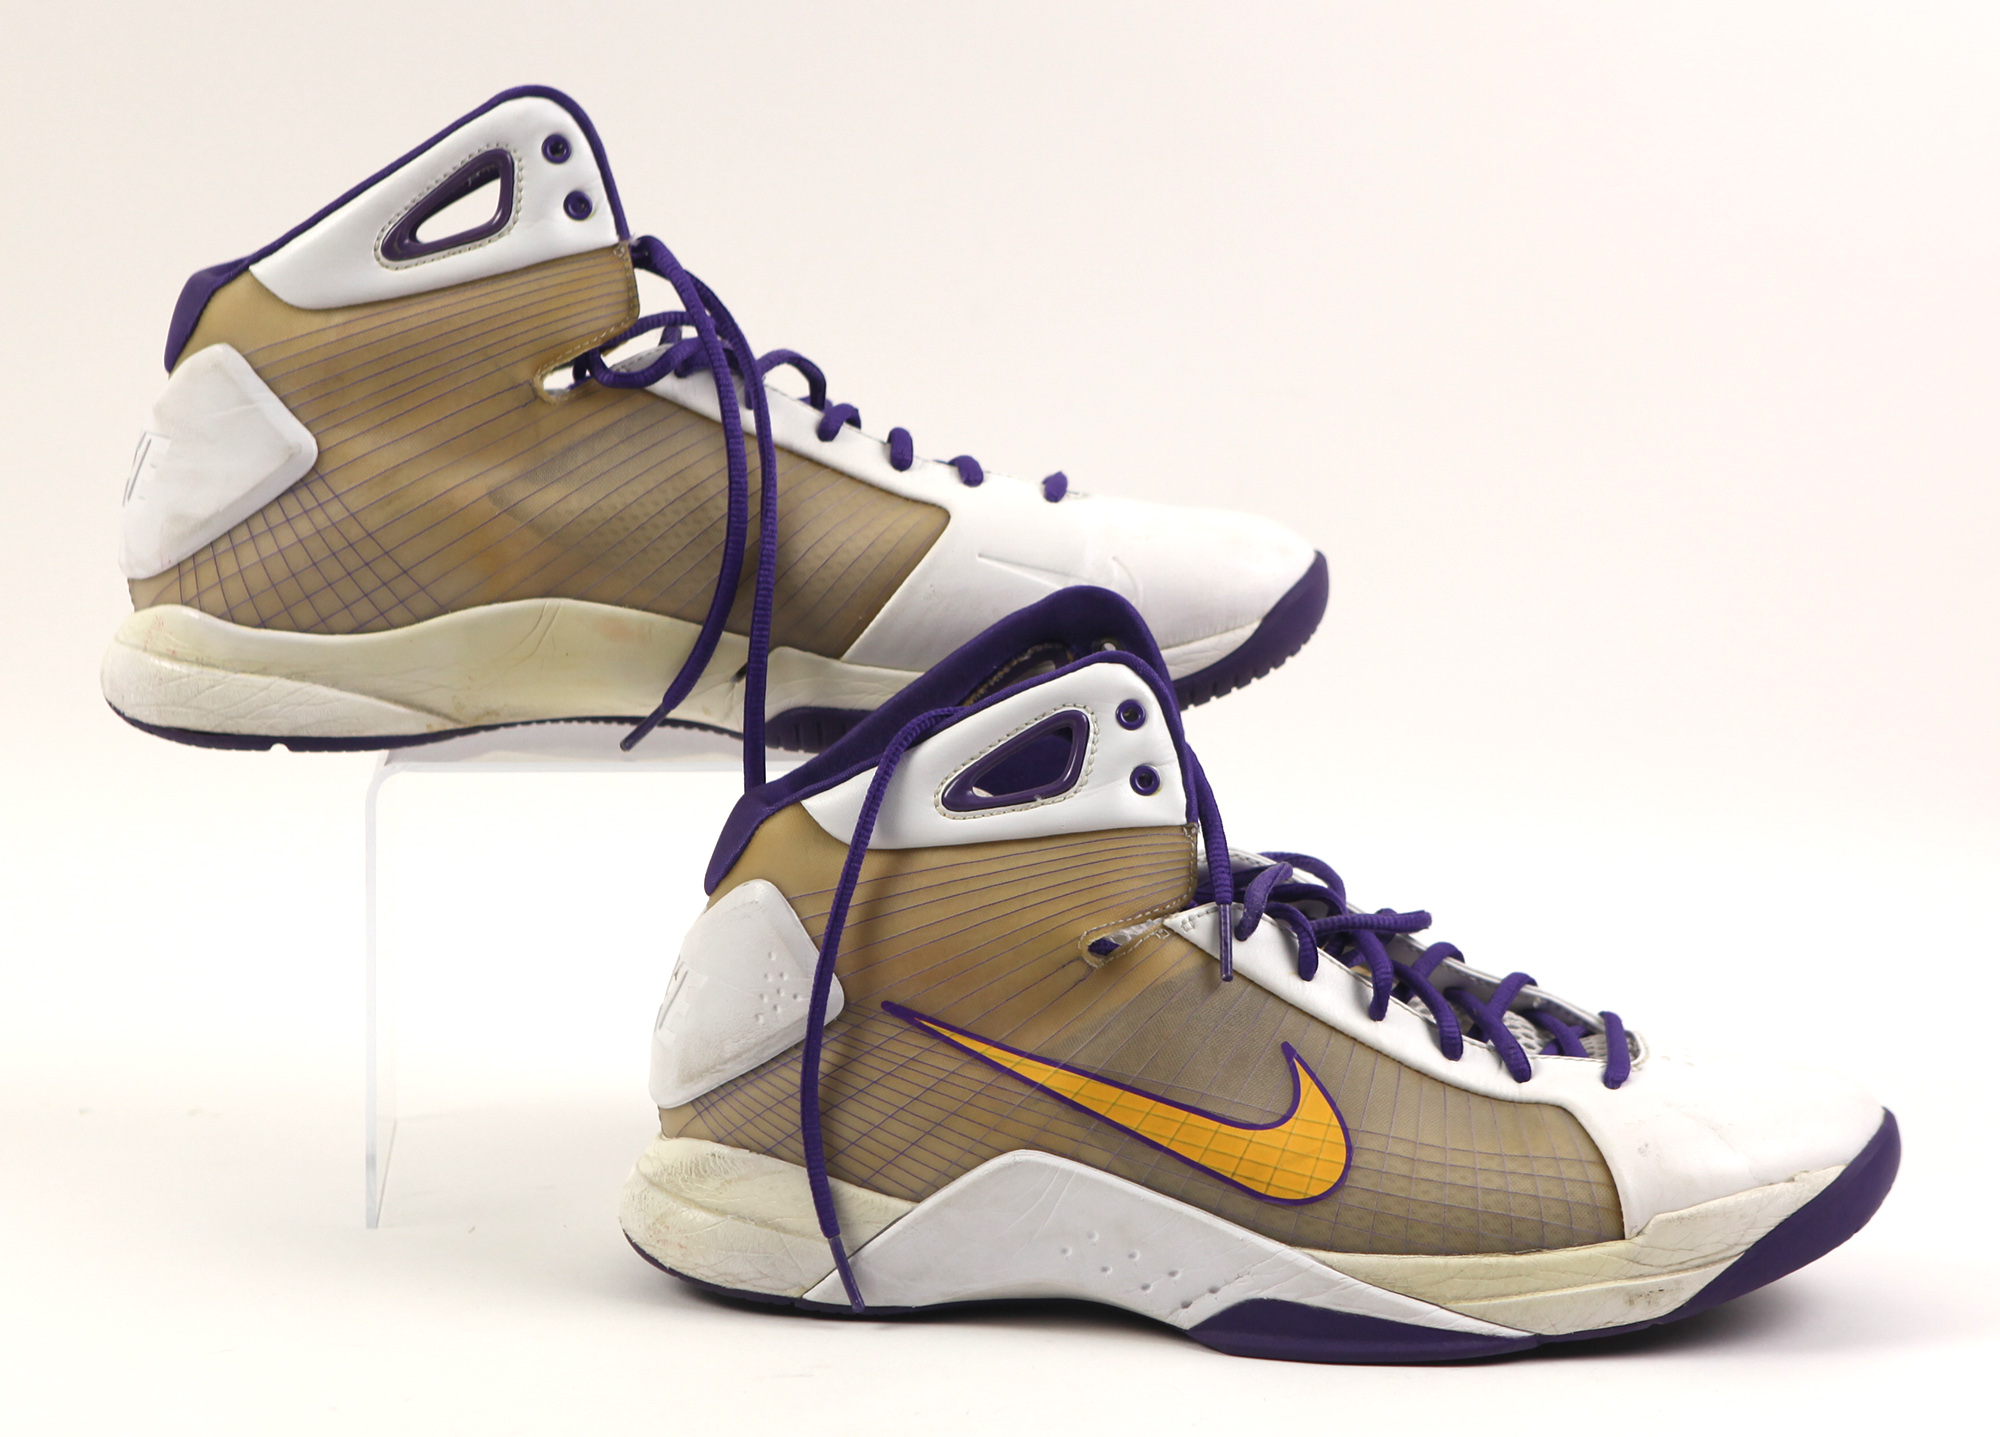 lot detail 2008 09 kobe bryant los angeles lakers game worn nike sneakers mears loa. Black Bedroom Furniture Sets. Home Design Ideas